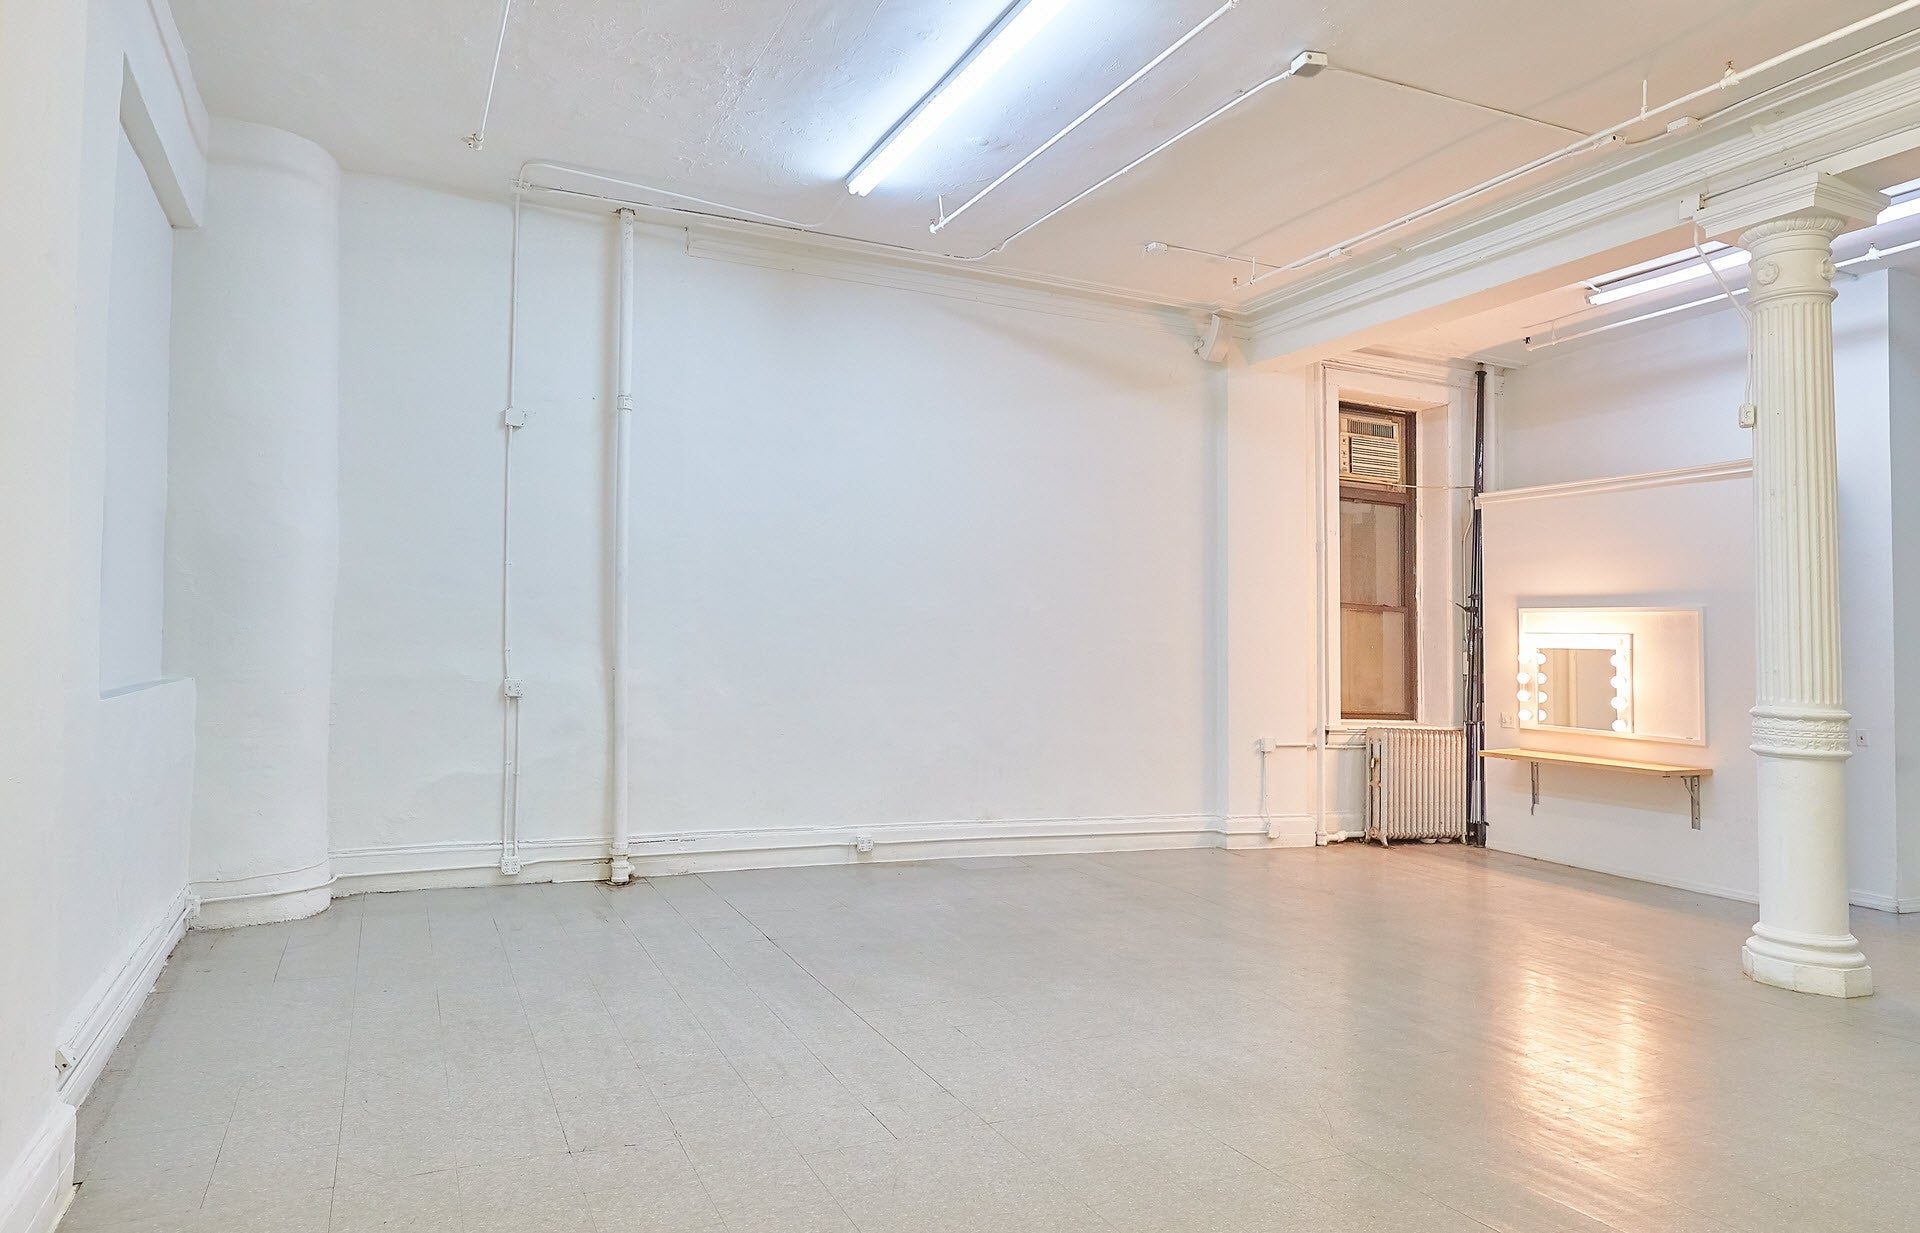 VENUE SPACE FOR RENT IN NYC